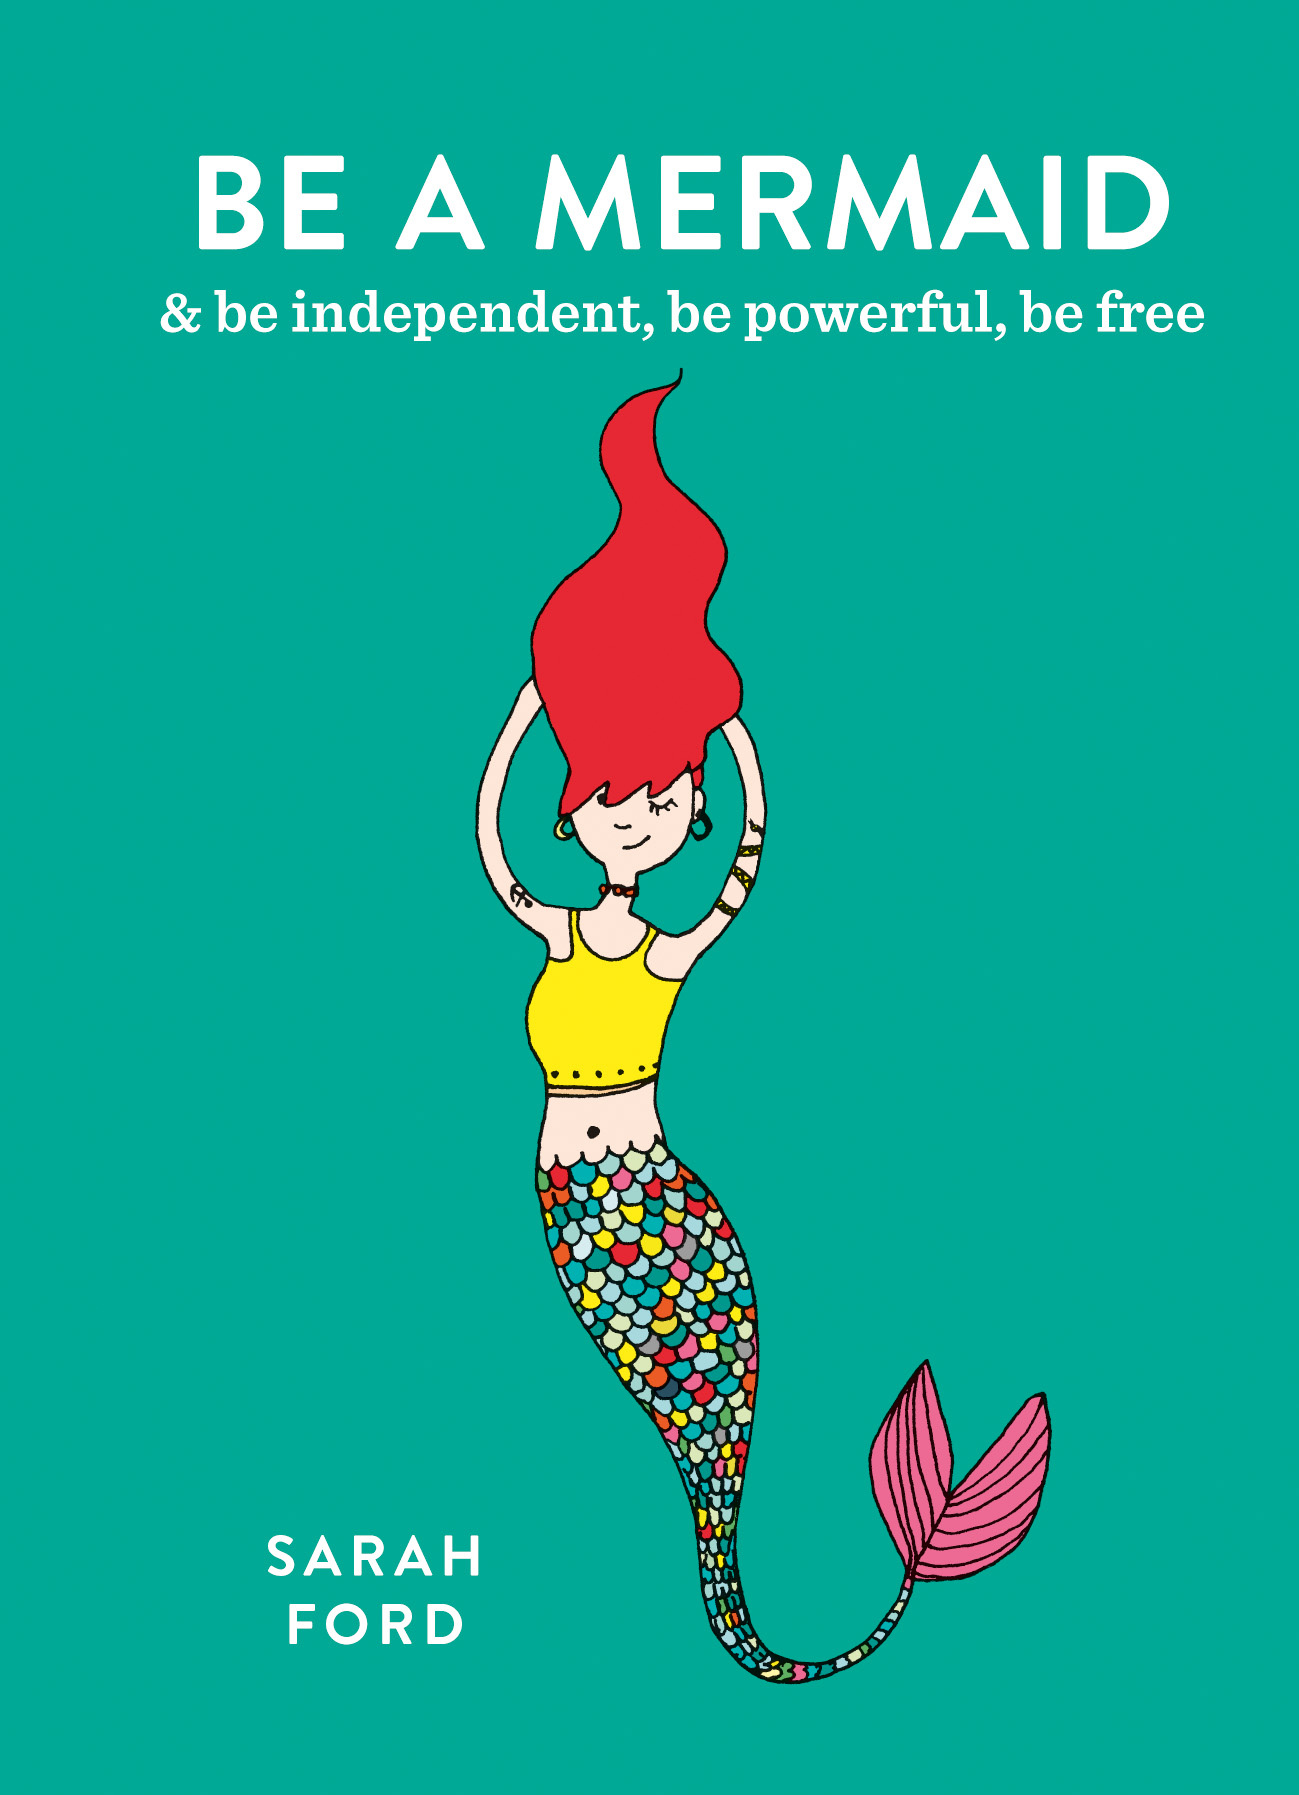 Be A Mermaid Independent Powerful Free By Sarah Ford